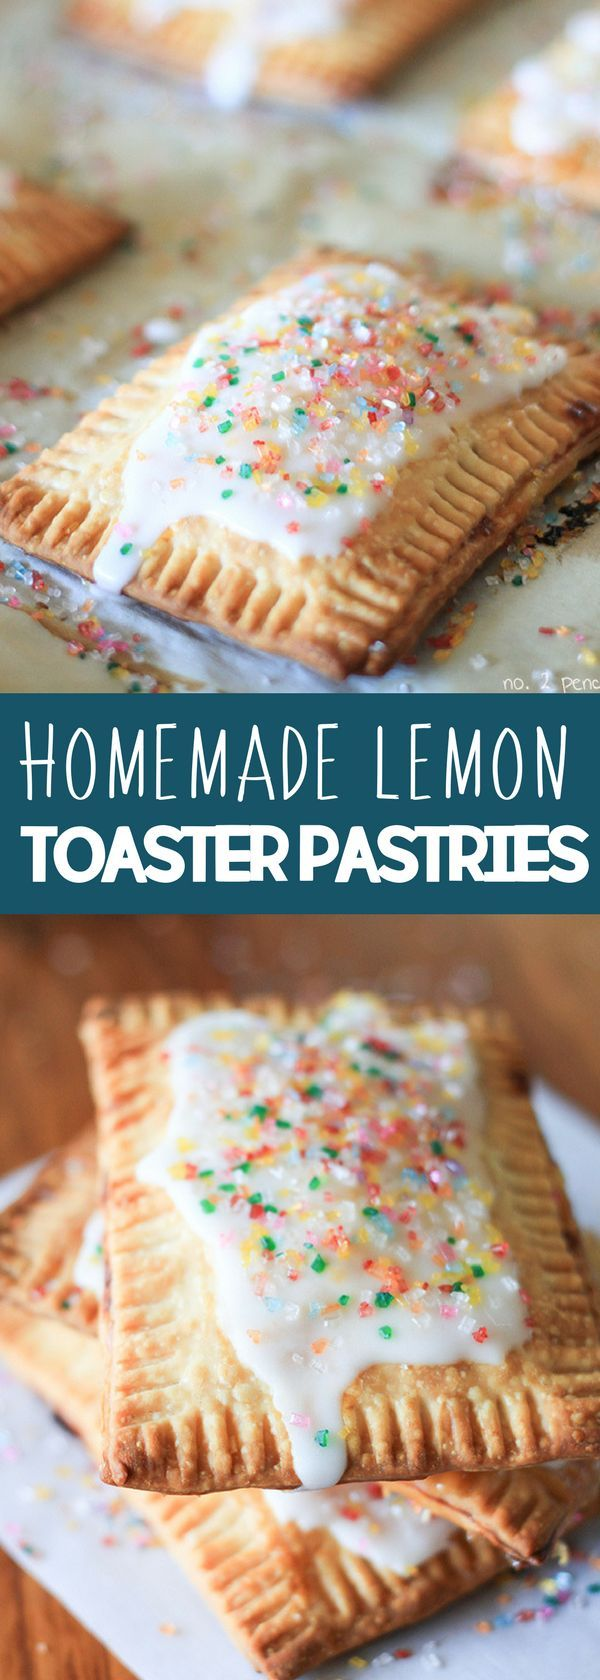 Homemade Lemon Toaster Pastries - easy to make and really delicious. I used store-bought lemon curd and pre-made pie dough to whip these up in just a few minutes. Top with lemon glaze and rainbow sugar sprinkles making it a delicious sweet treat! For more easy food recipes, creative craft ideas, easy home decor and DIY projects, check us out at #no2pencil. #food #drooling #sweettooth #recipeoftheday #recipeideas